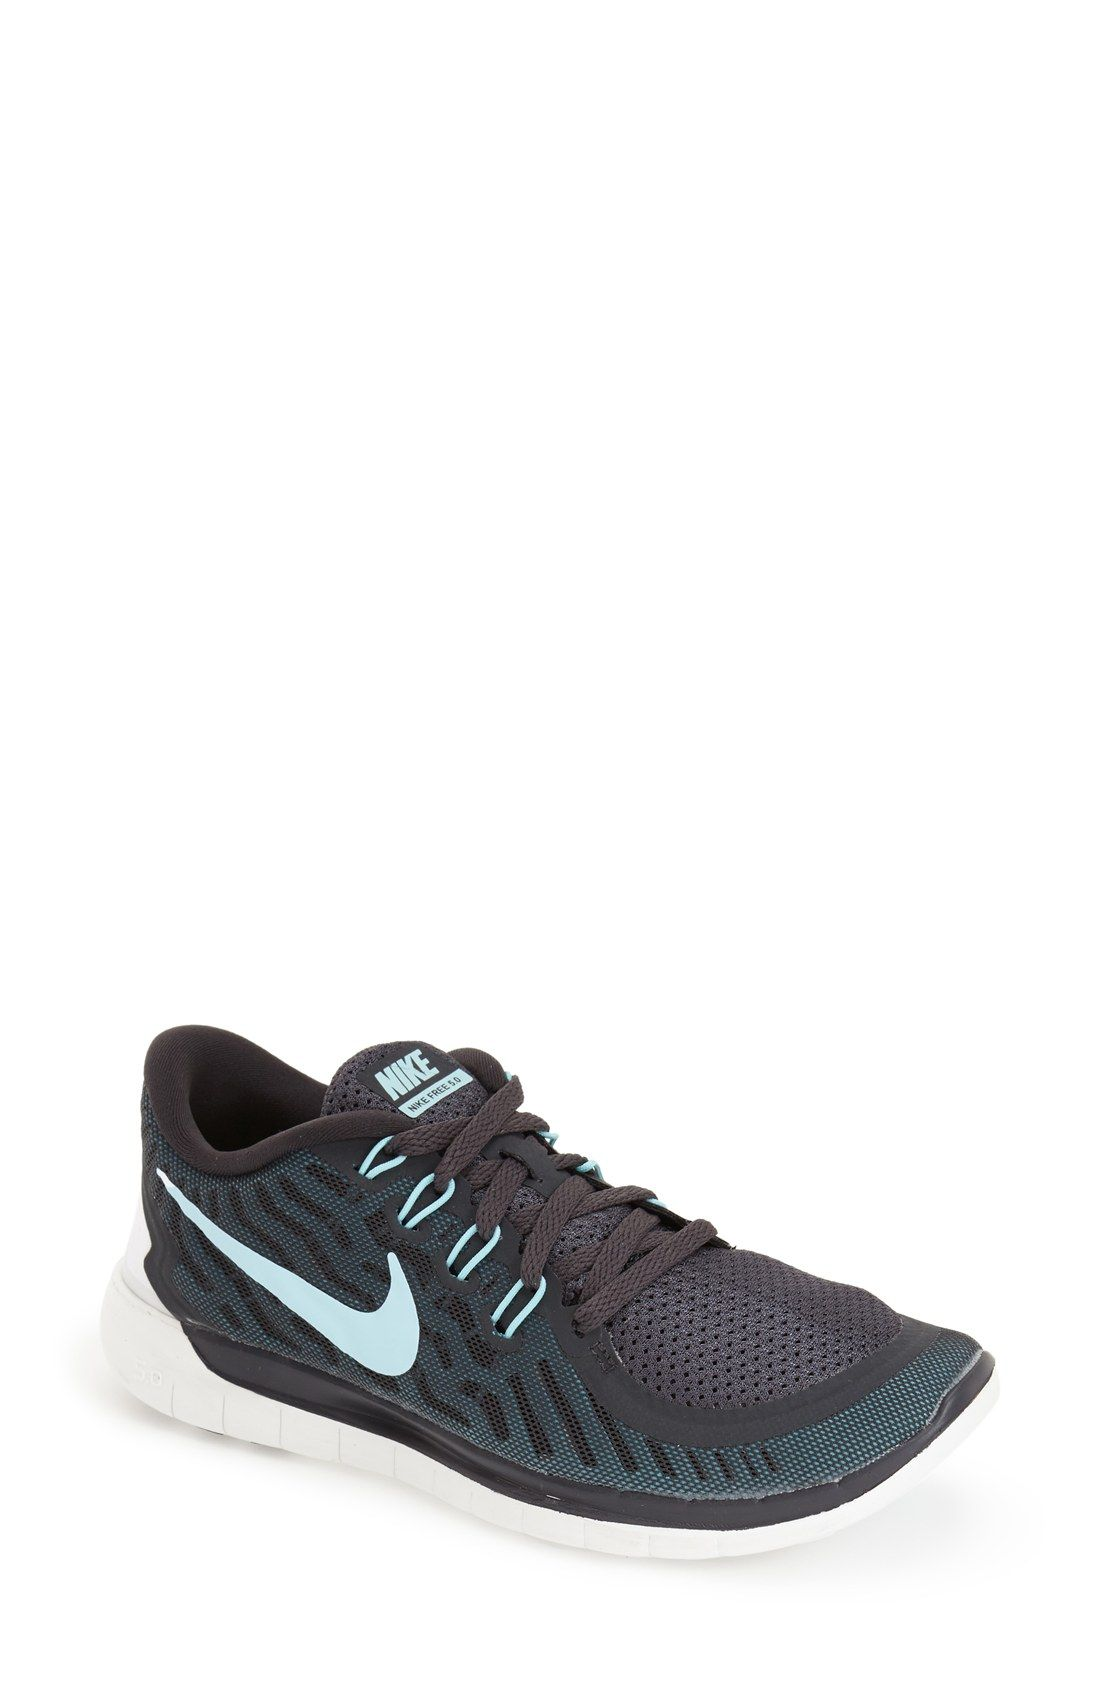 sports shoes 5747c 97c64 Running Shoes to get back into shape (Nikes run small)